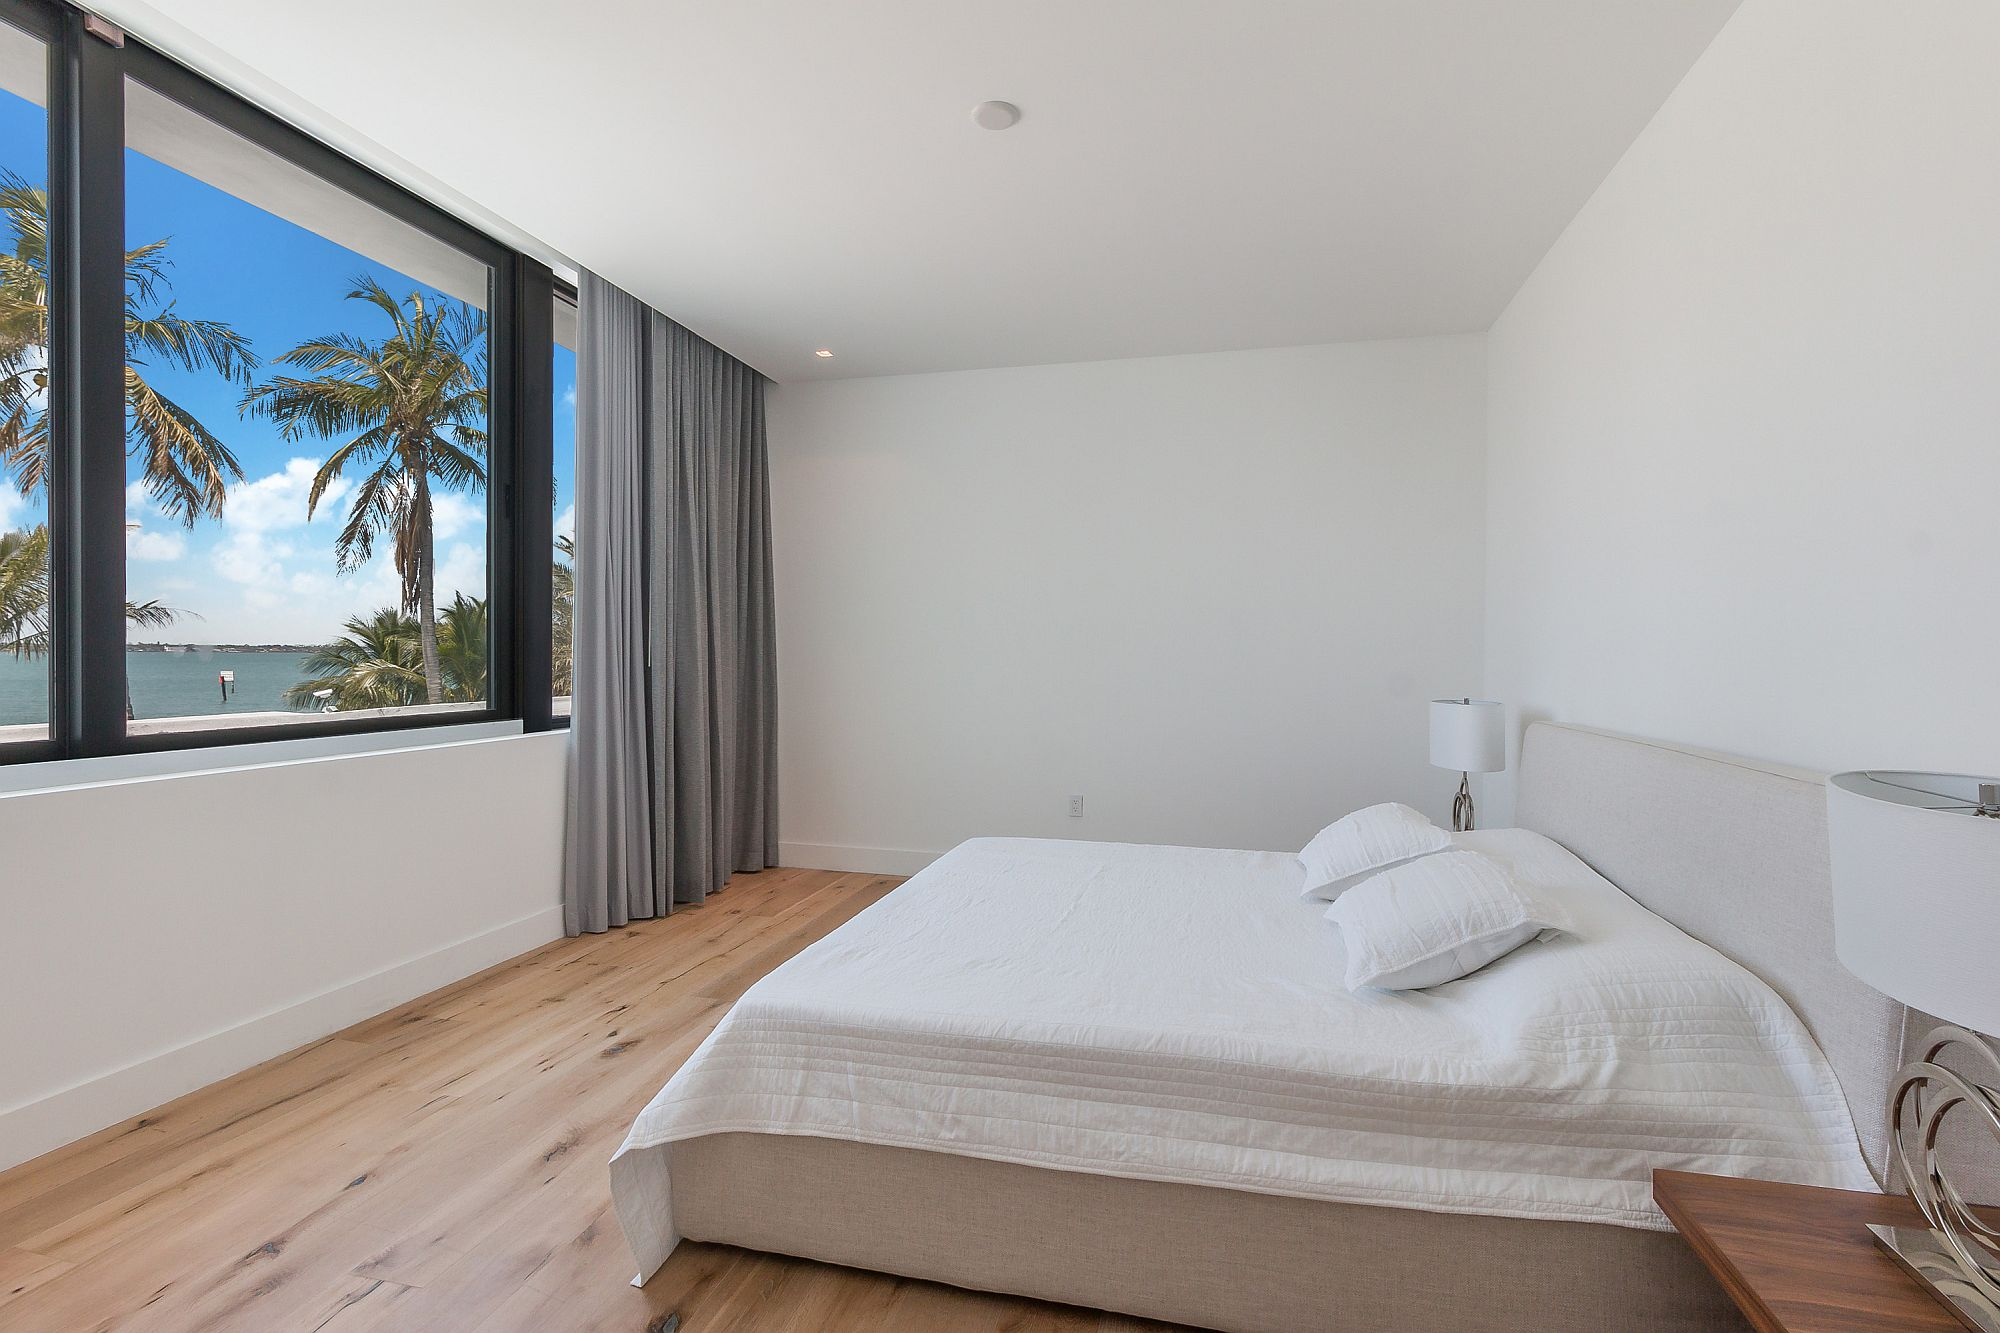 Keeping the bedroom minimal to elevate the view outside